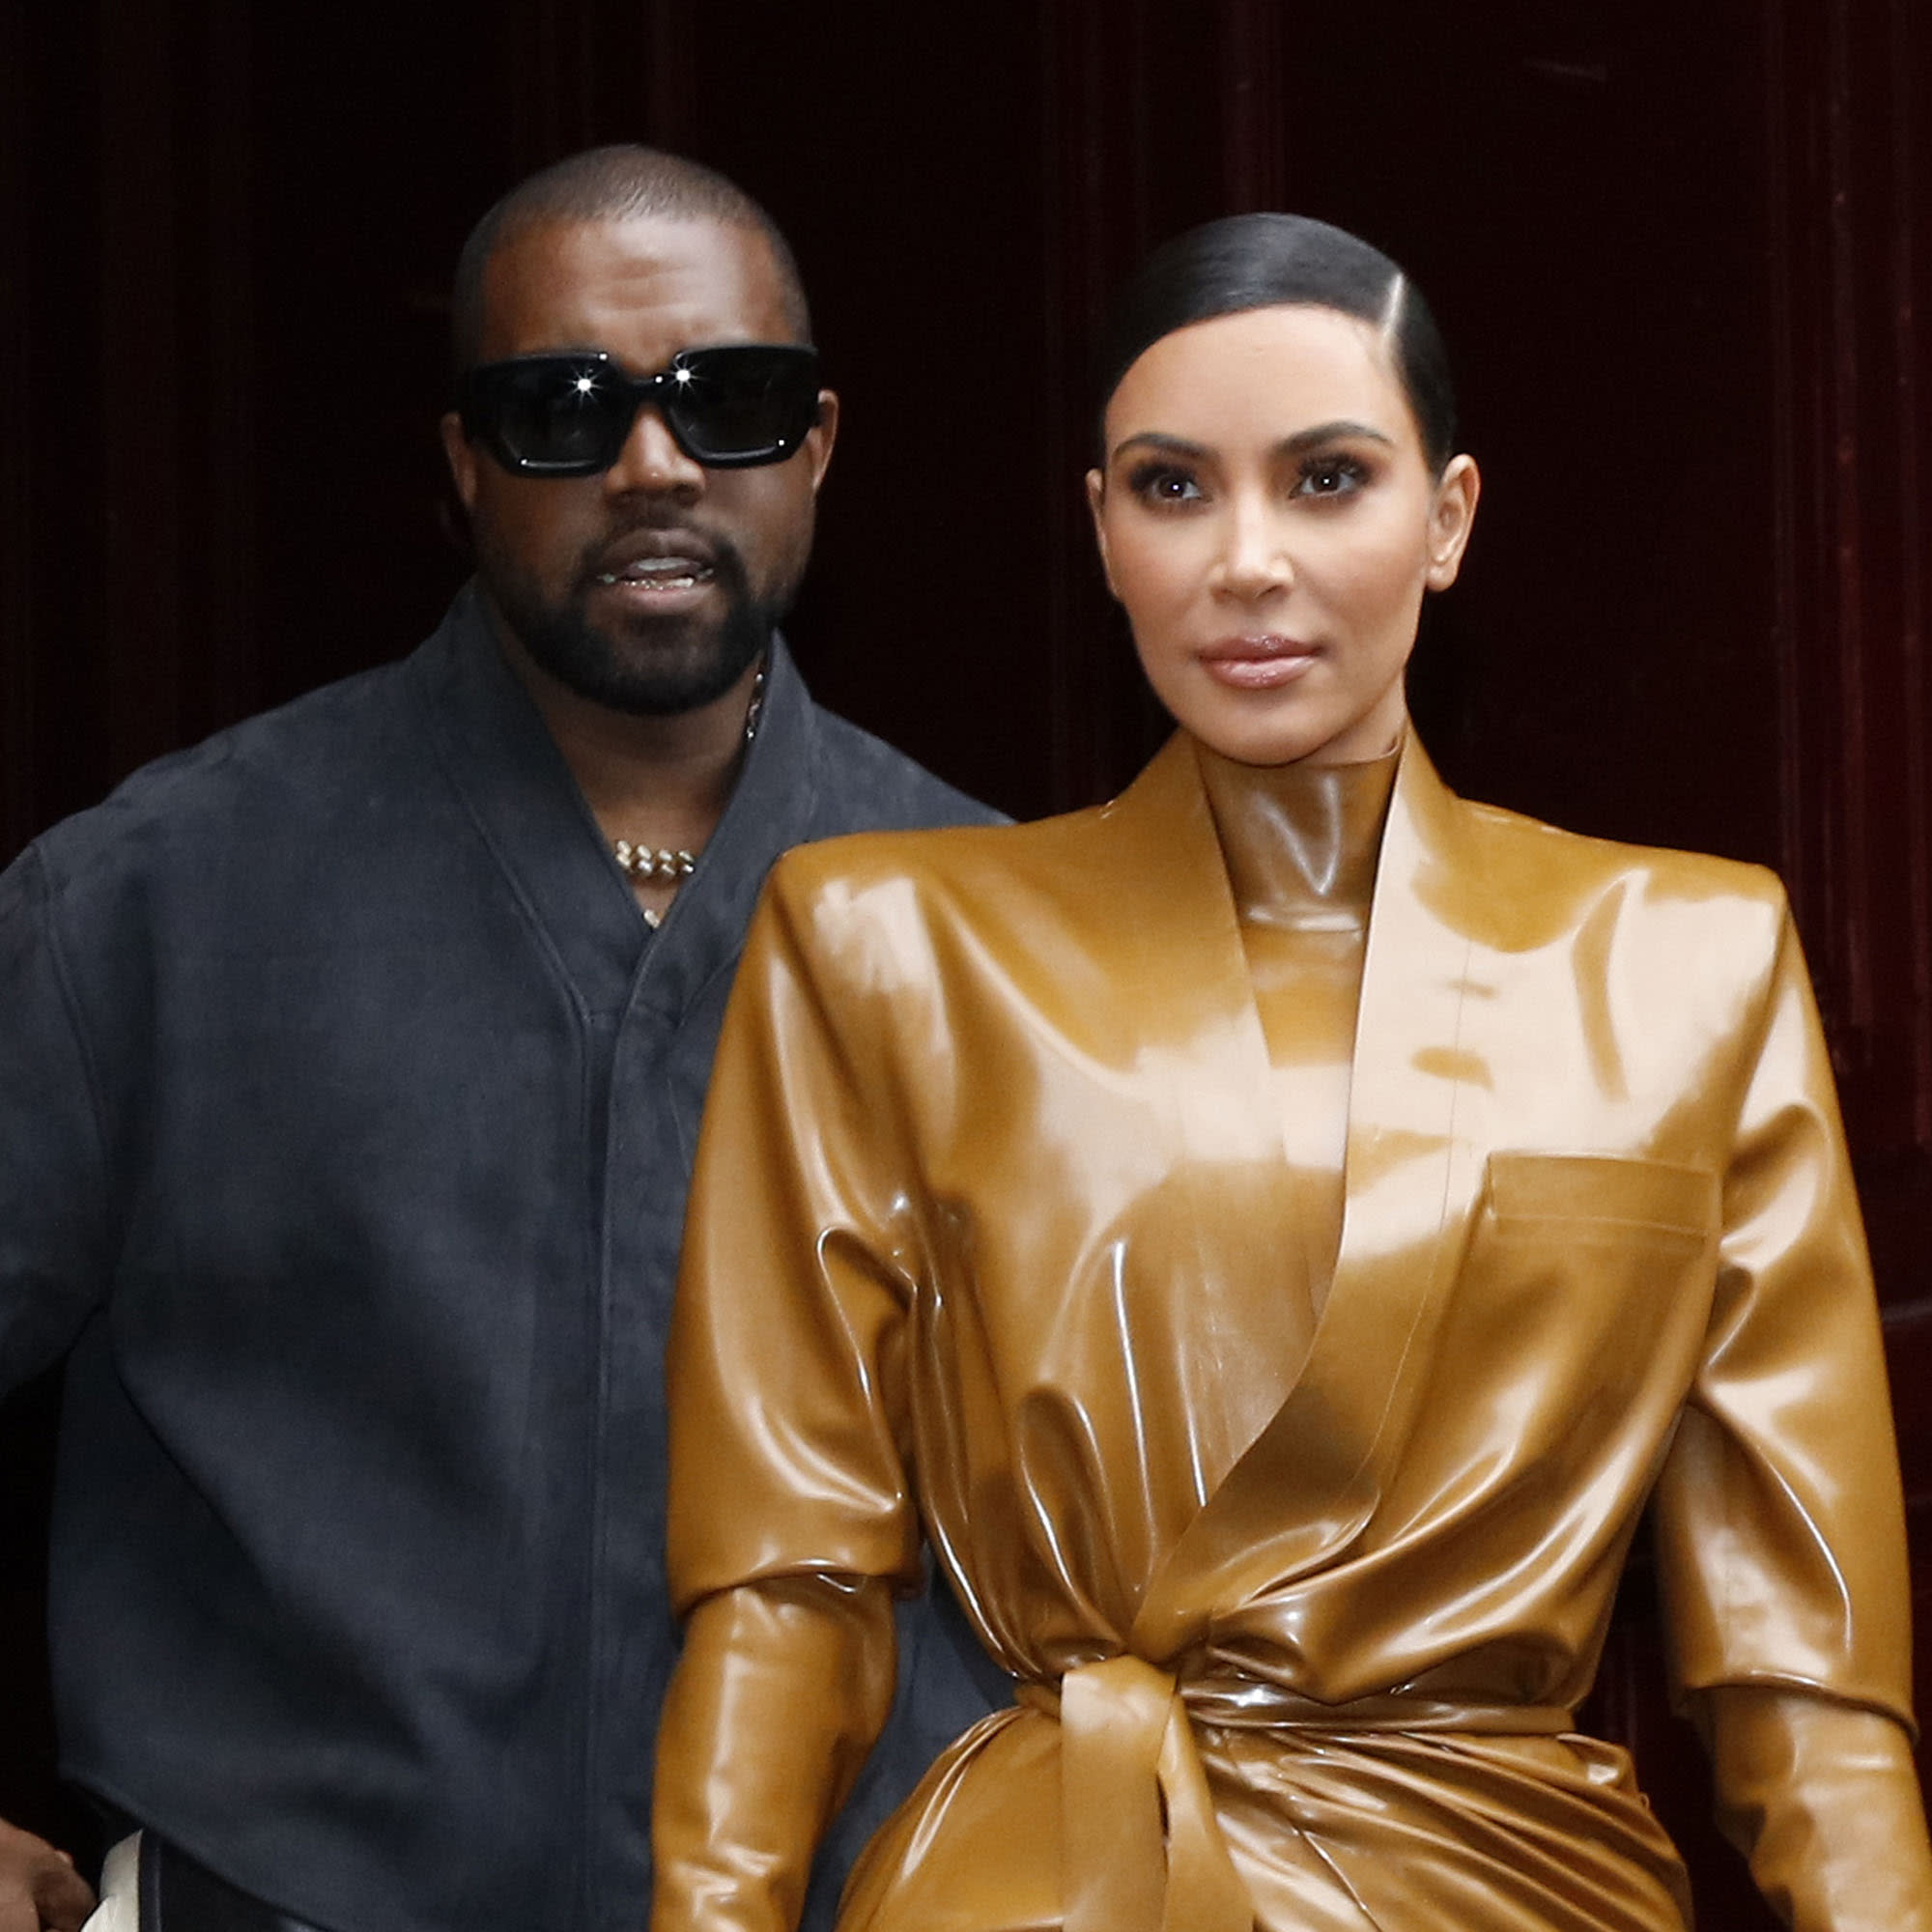 Please forgive me - Kanye West tweets apology to wife